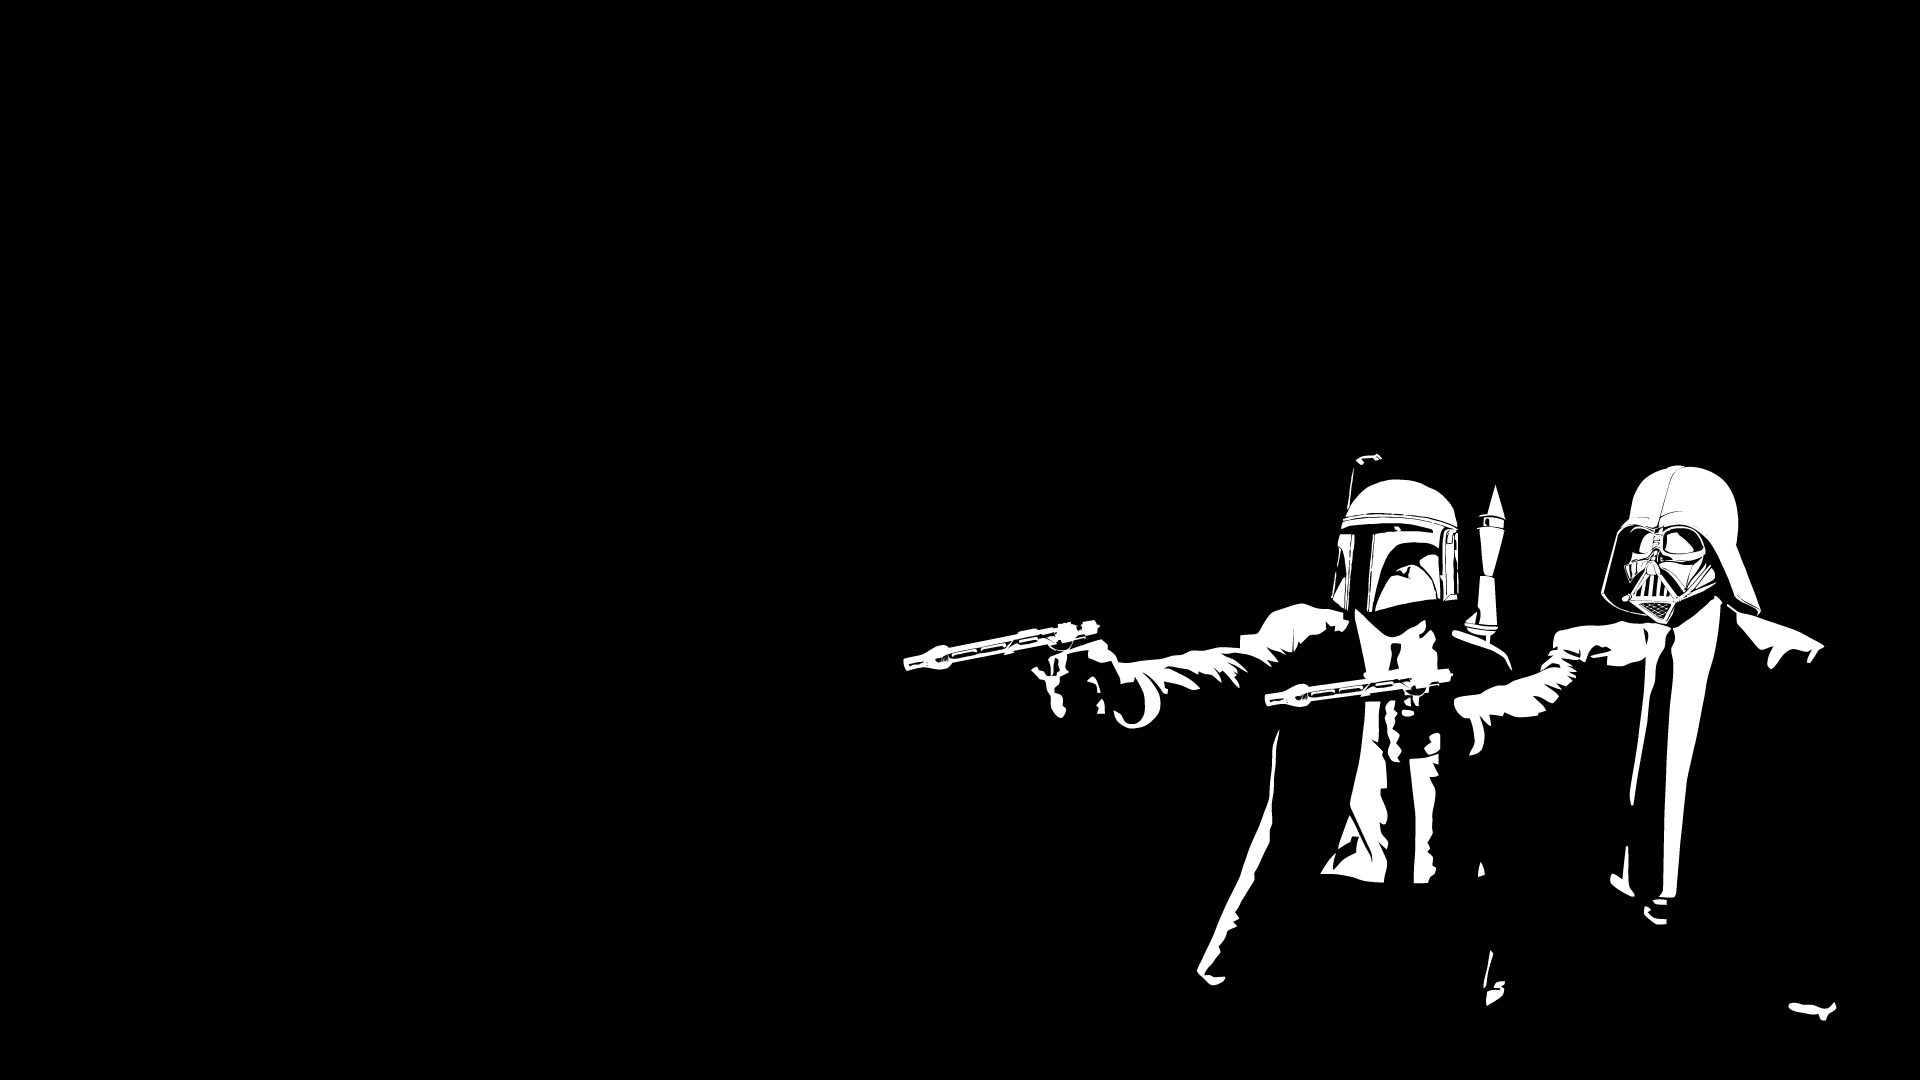 Gun Man Cool Black Wallpaper